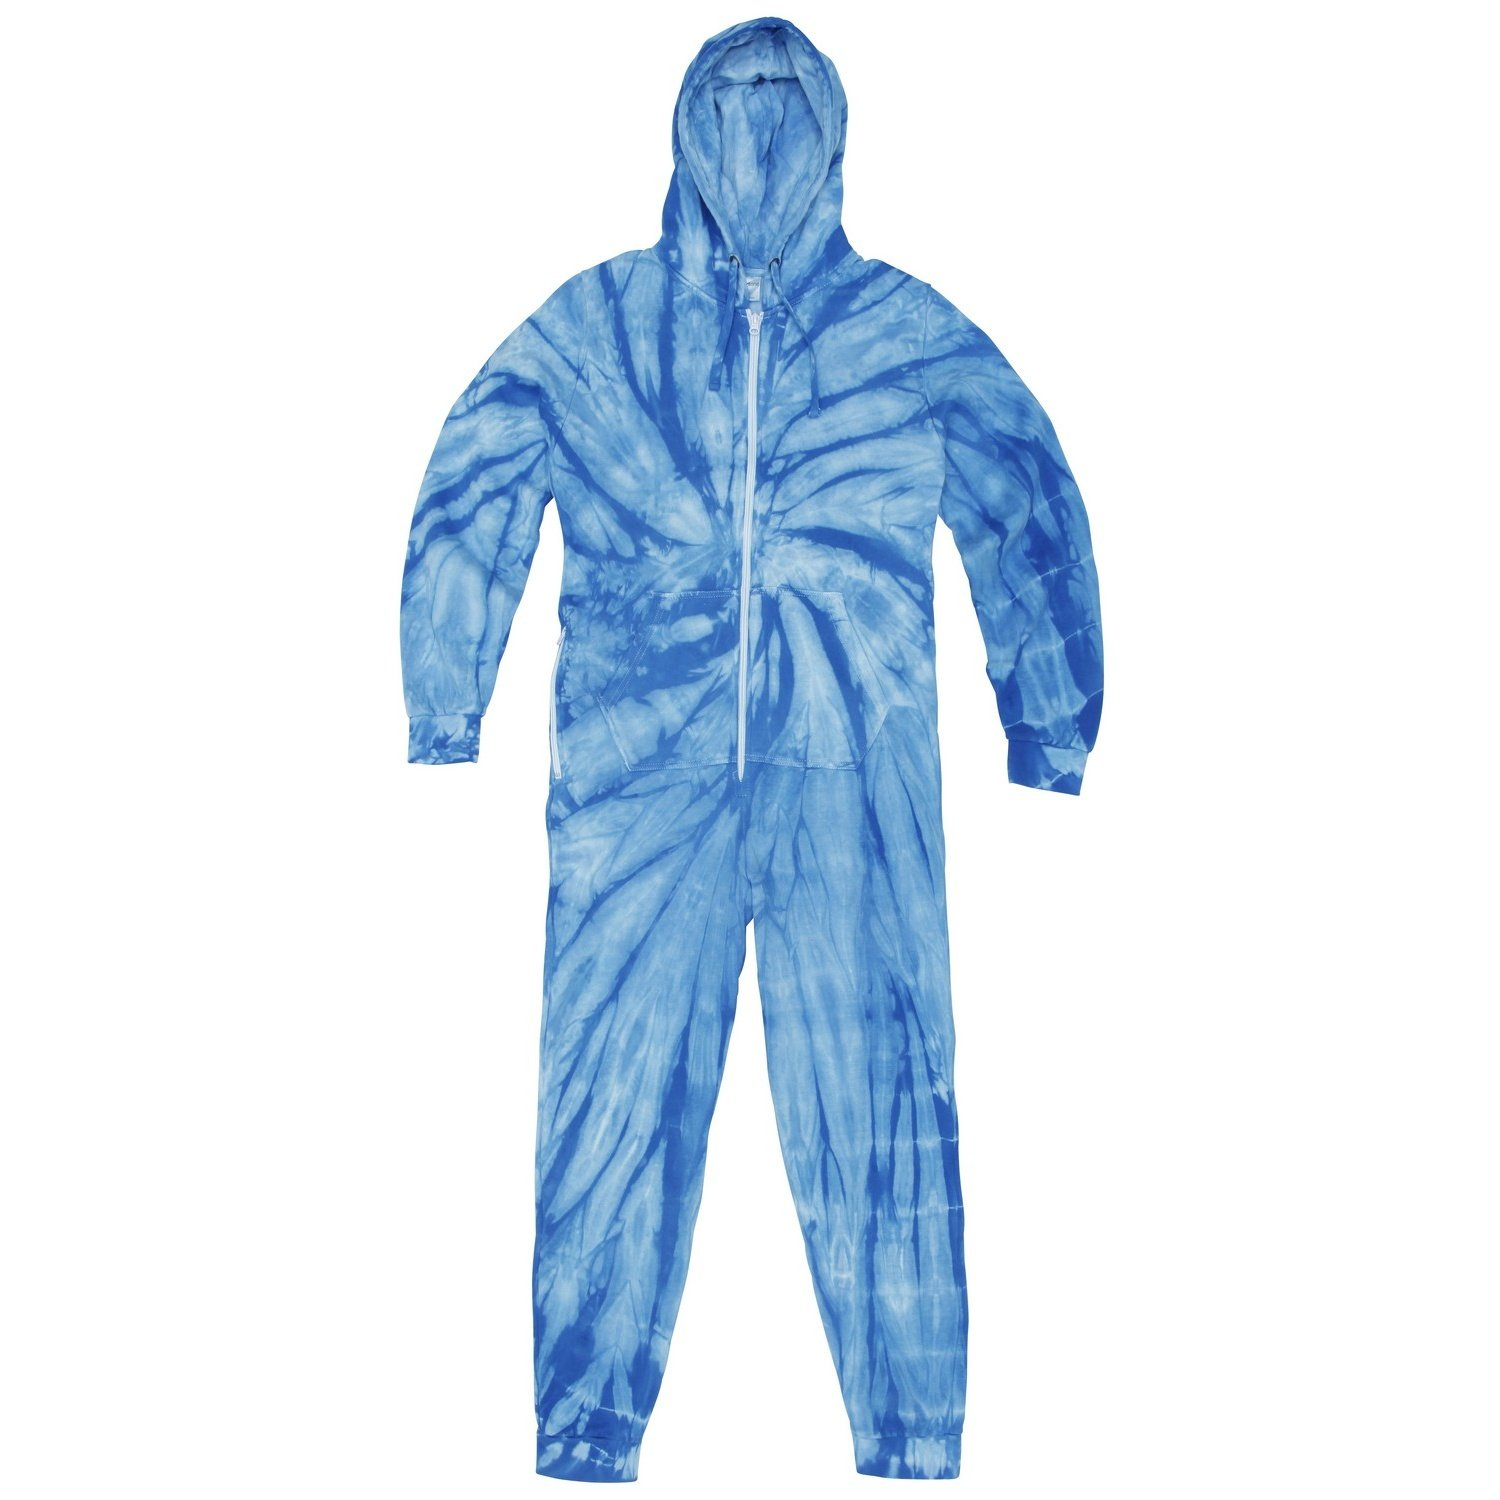 Unisex Adults Full Zip Tonal Spider Tie Dye Onesie